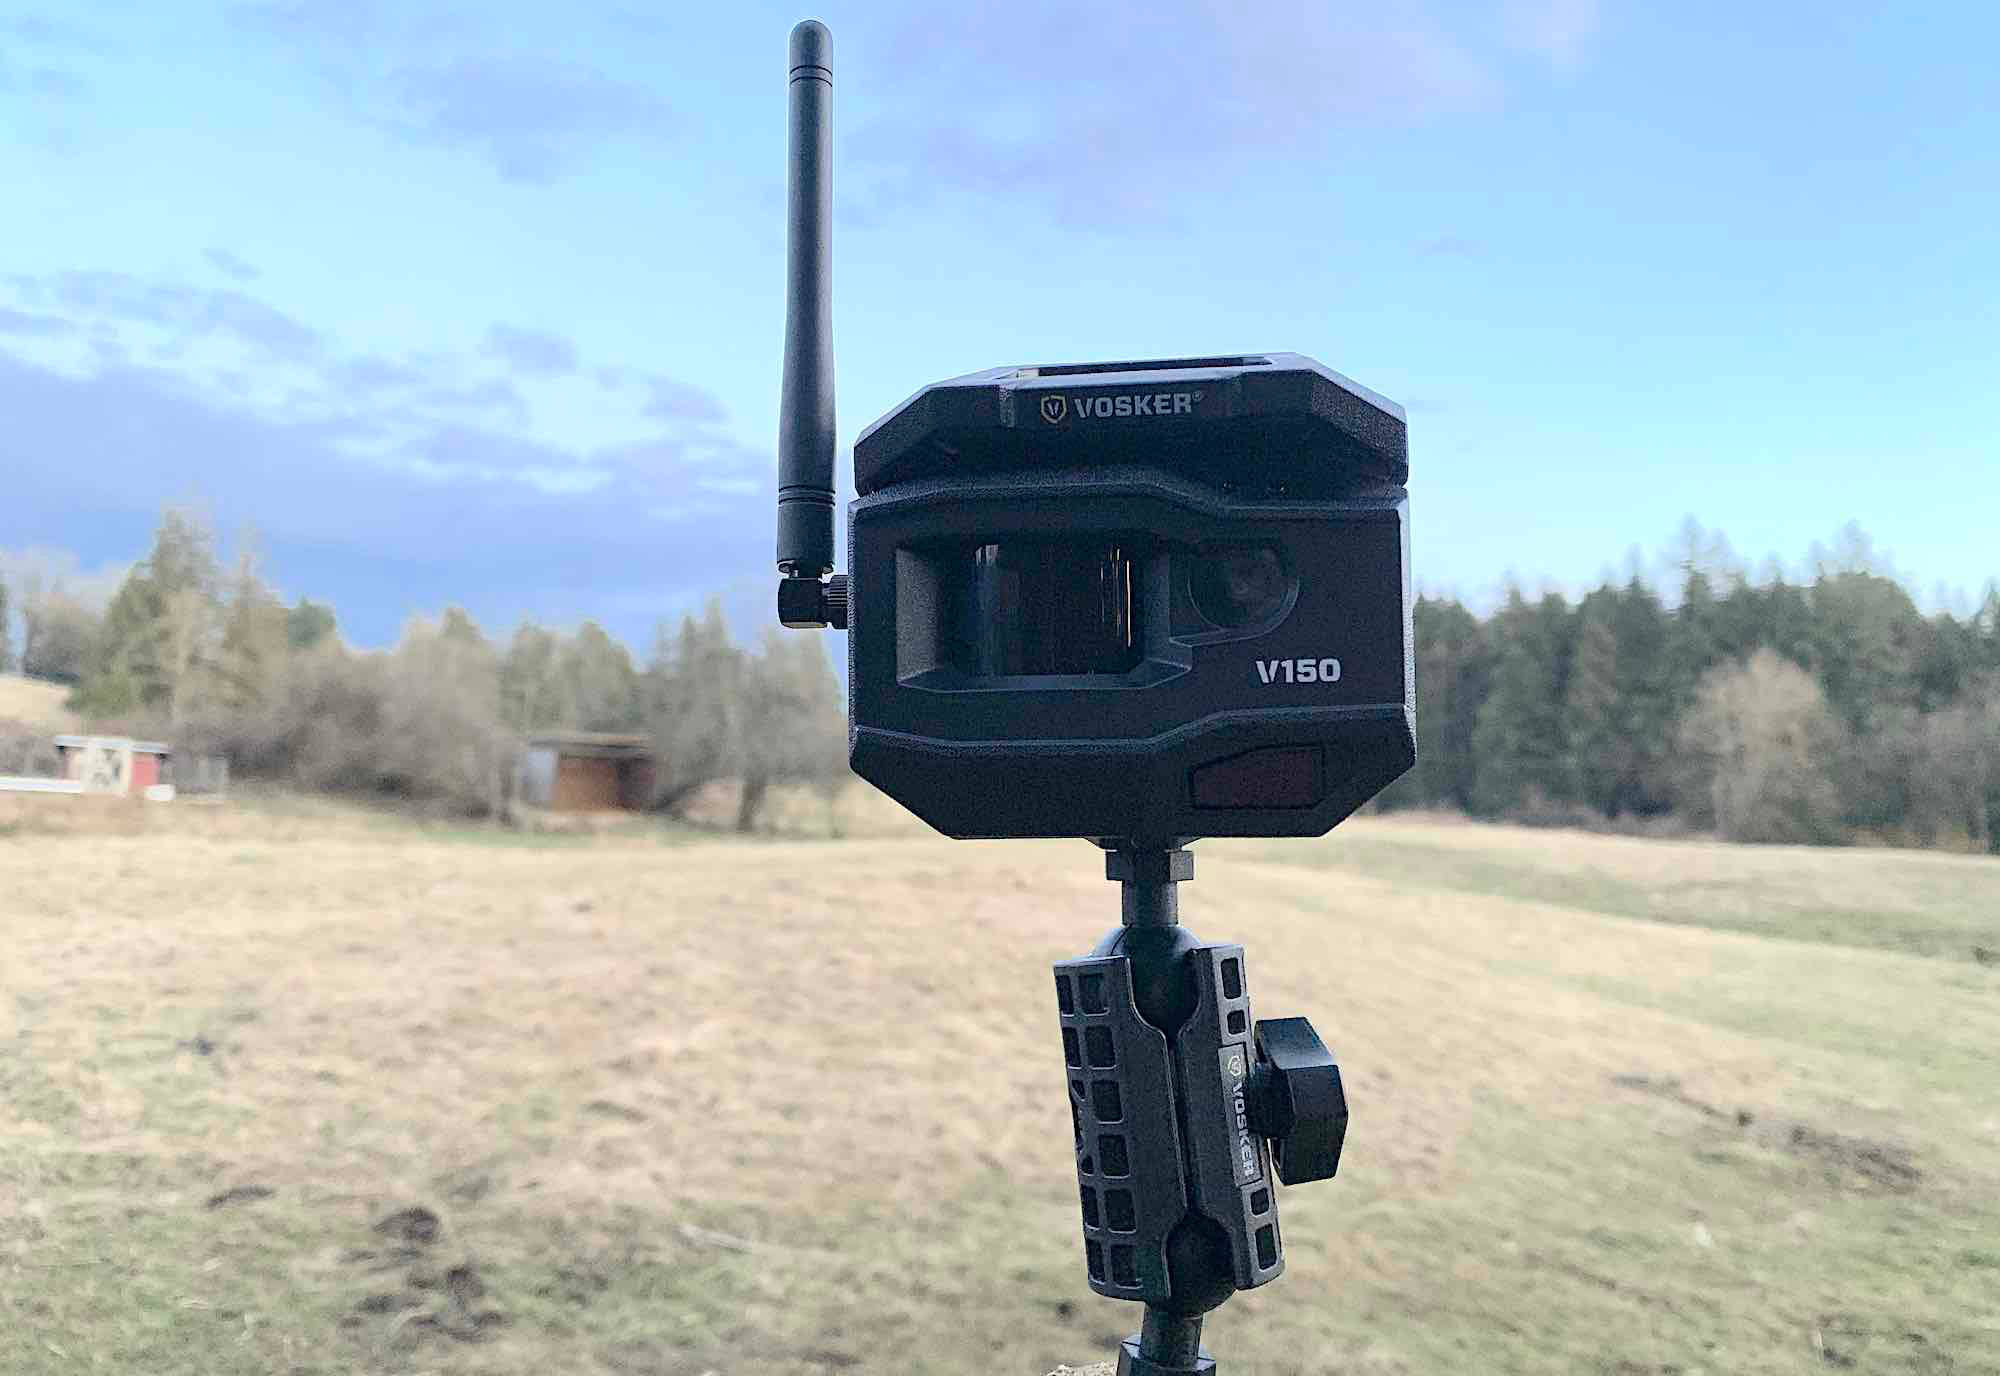 Vosker V150 wireless lte security camera review